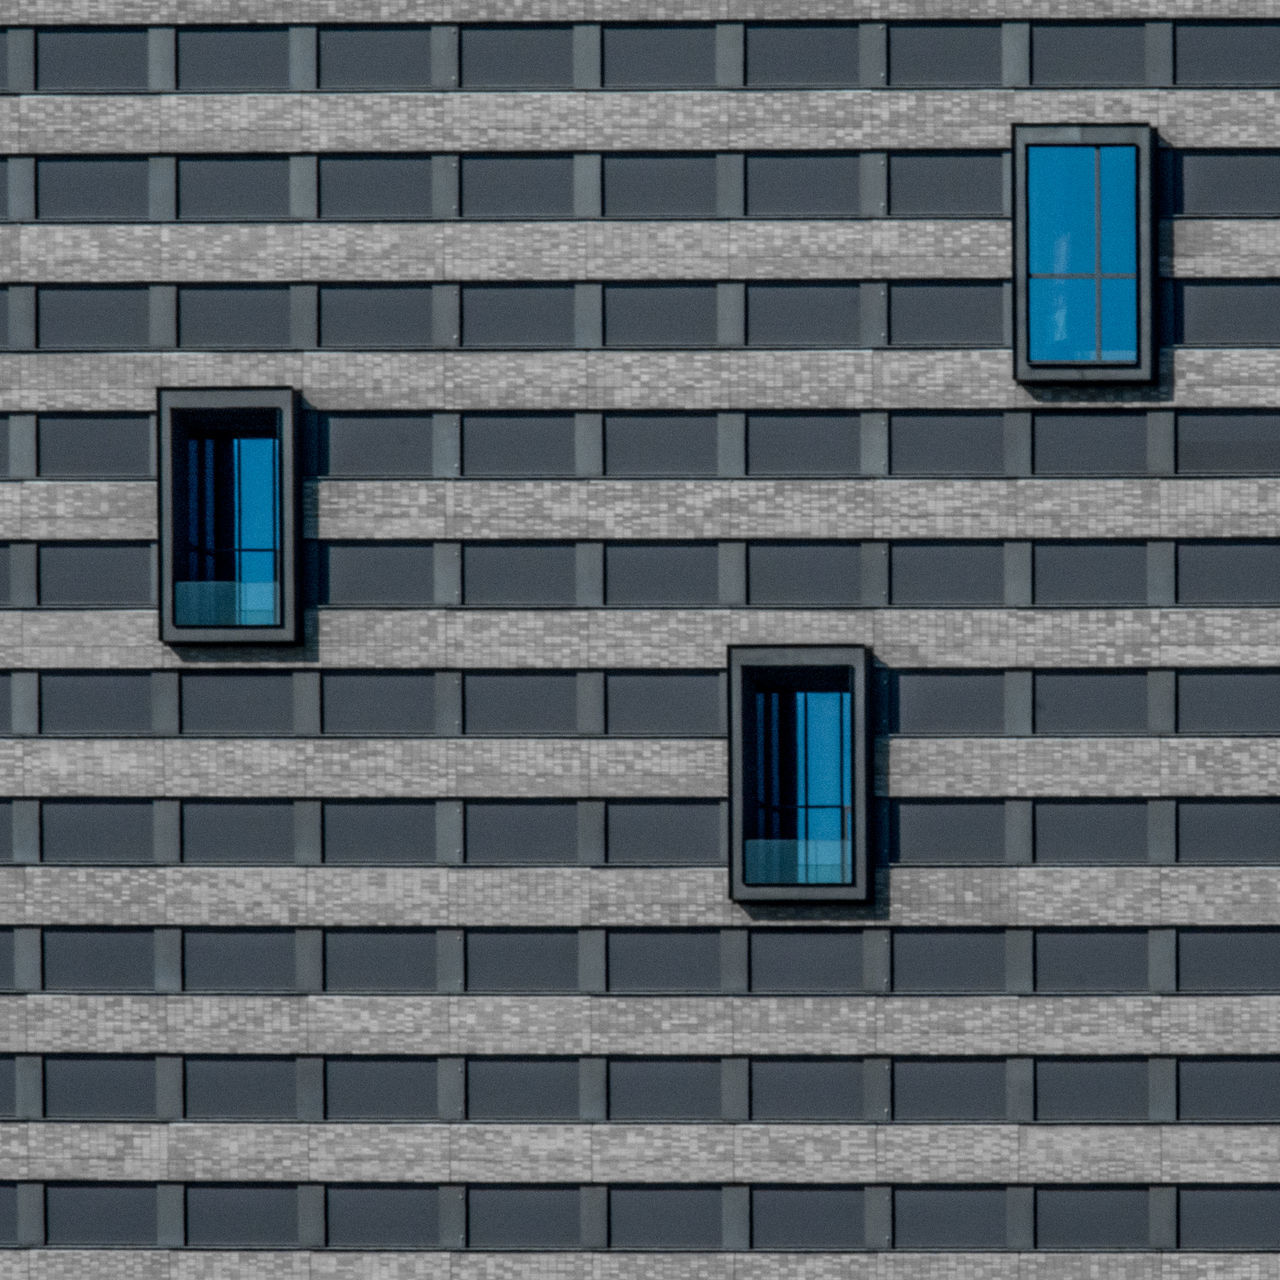 Square 007 Architectural Detail Architecture Architecture_collection Blue Building Exterior Built Structure City Close-up Composition Day Modern No People Outdoors Skyscraper Urban Geometry Window Art Is Everywhere The Architect - 2017 EyeEm Awards BYOPaper! Premium Collection